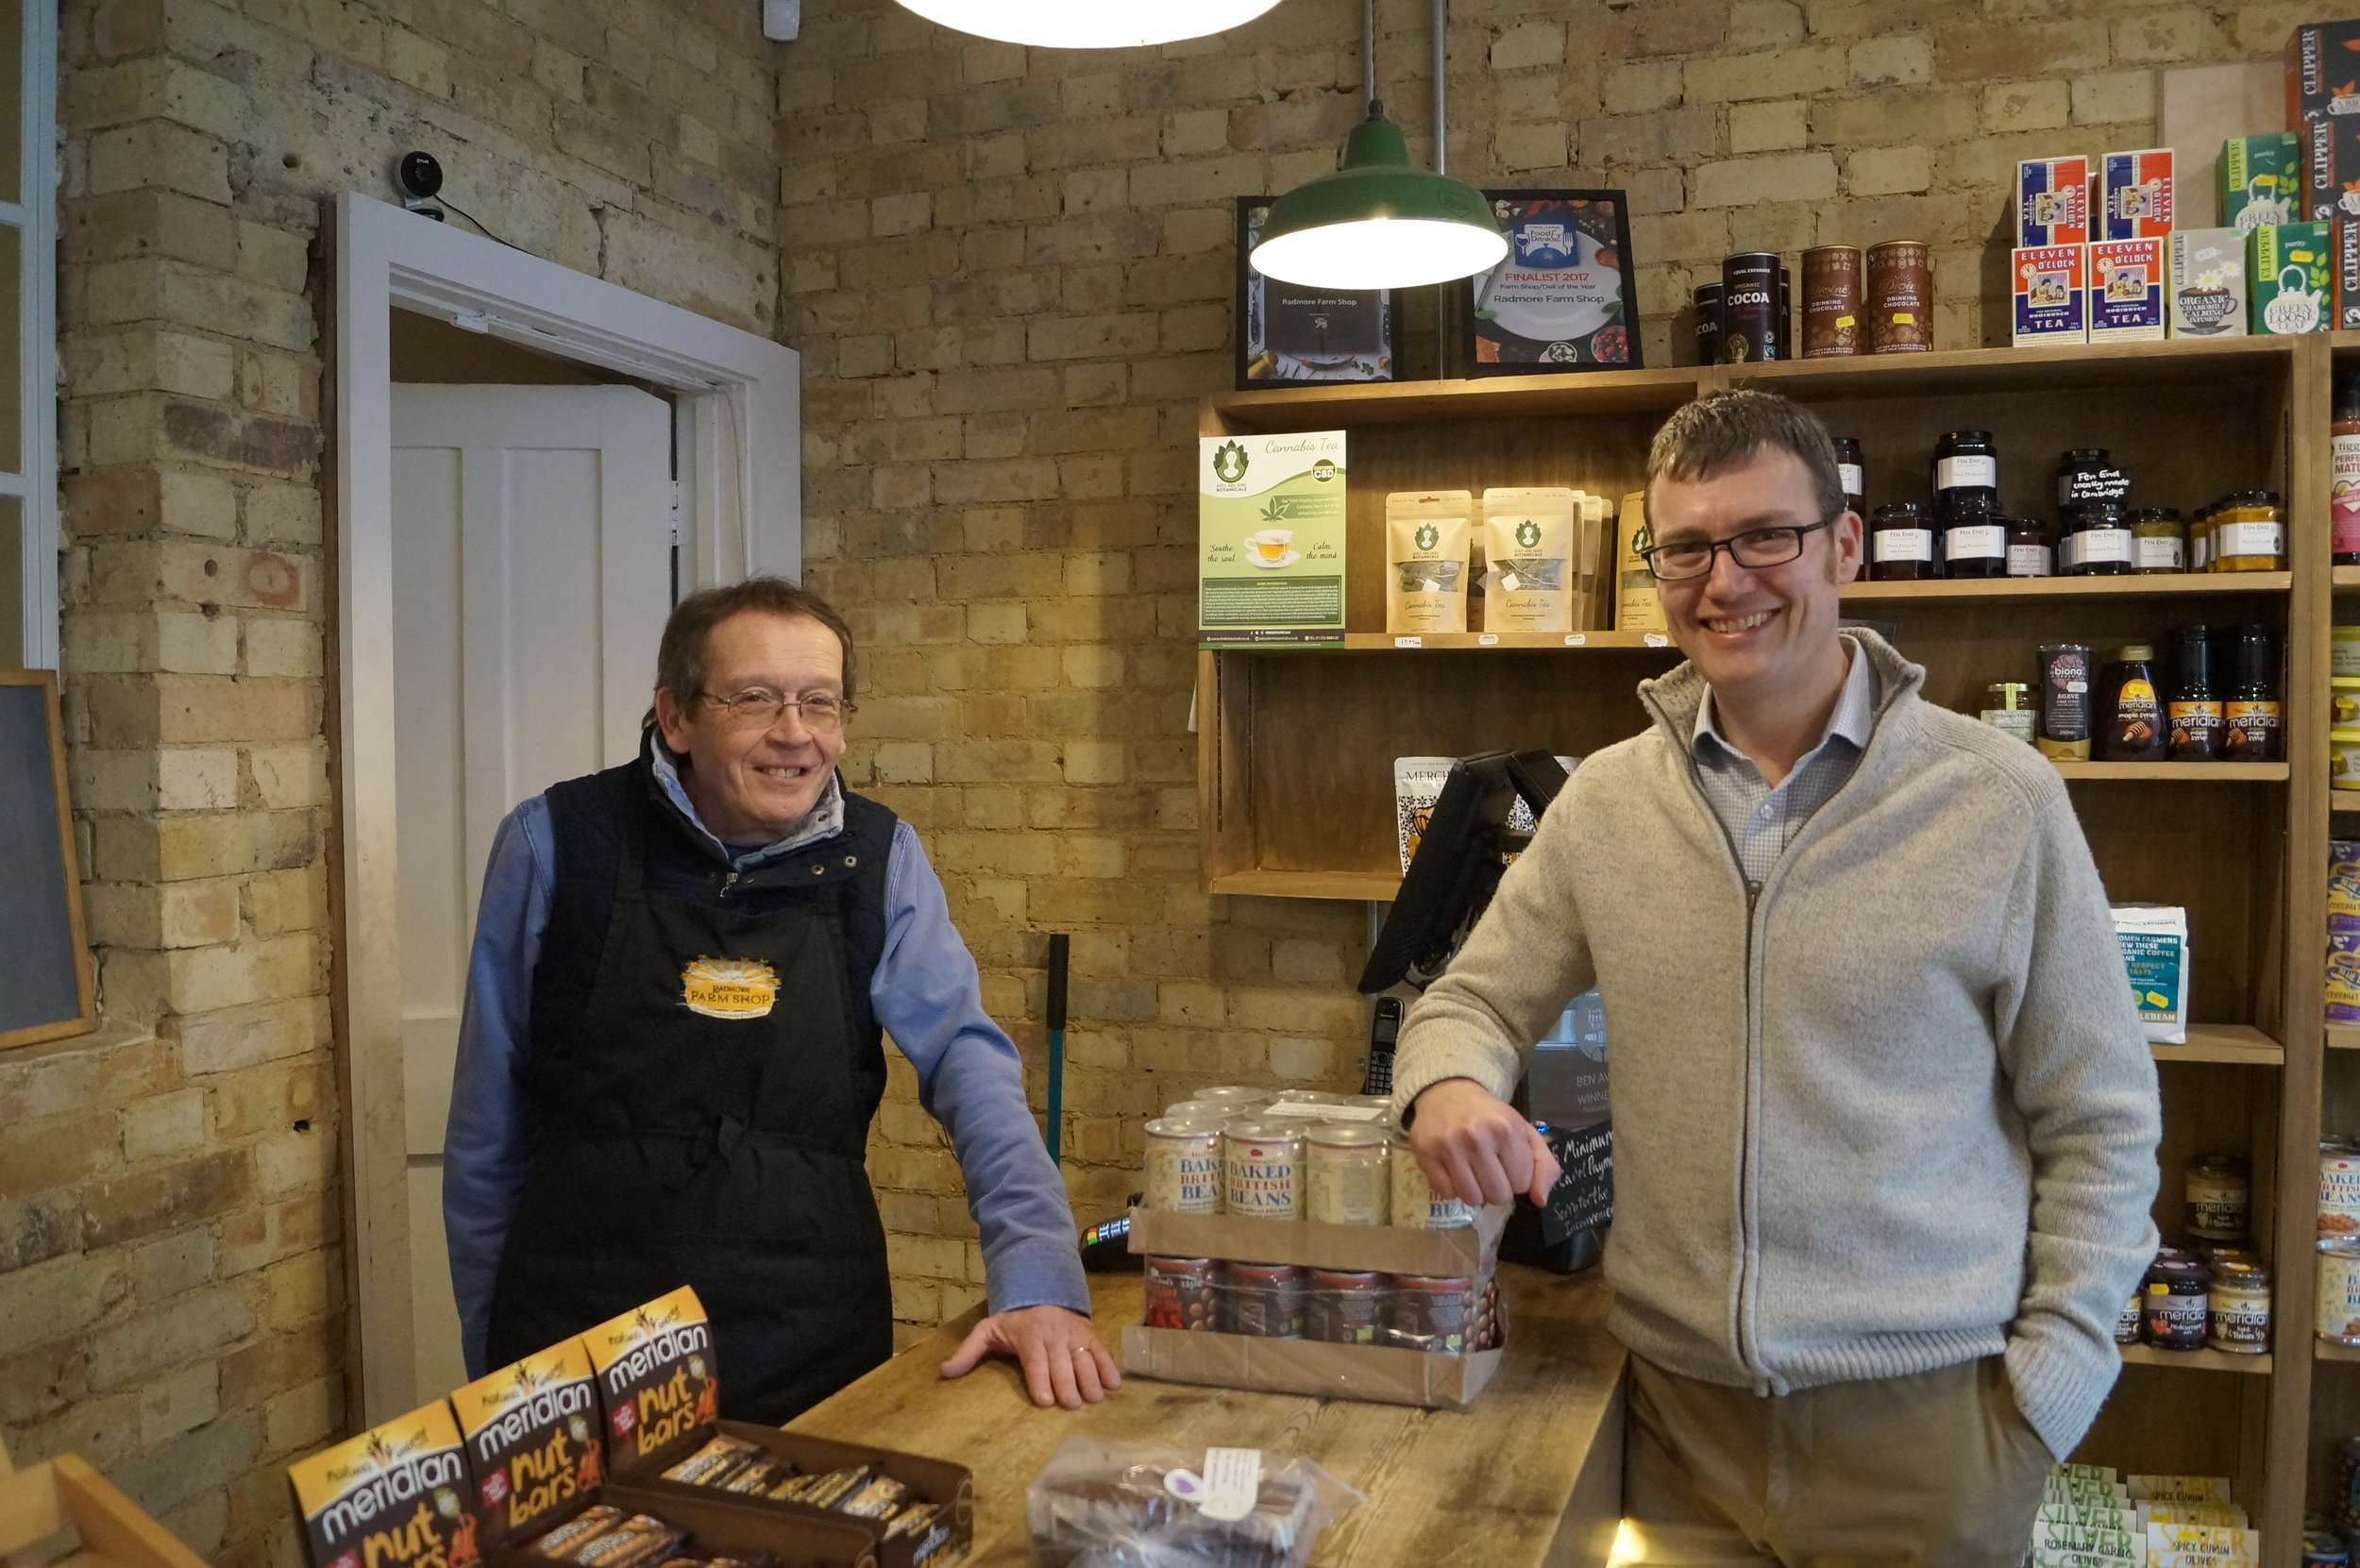 Project leader Duncan Catchpole from the Cambridge Organic Food Company (right) and his team were delighted with the Cambridge Food Hub's successful launch.